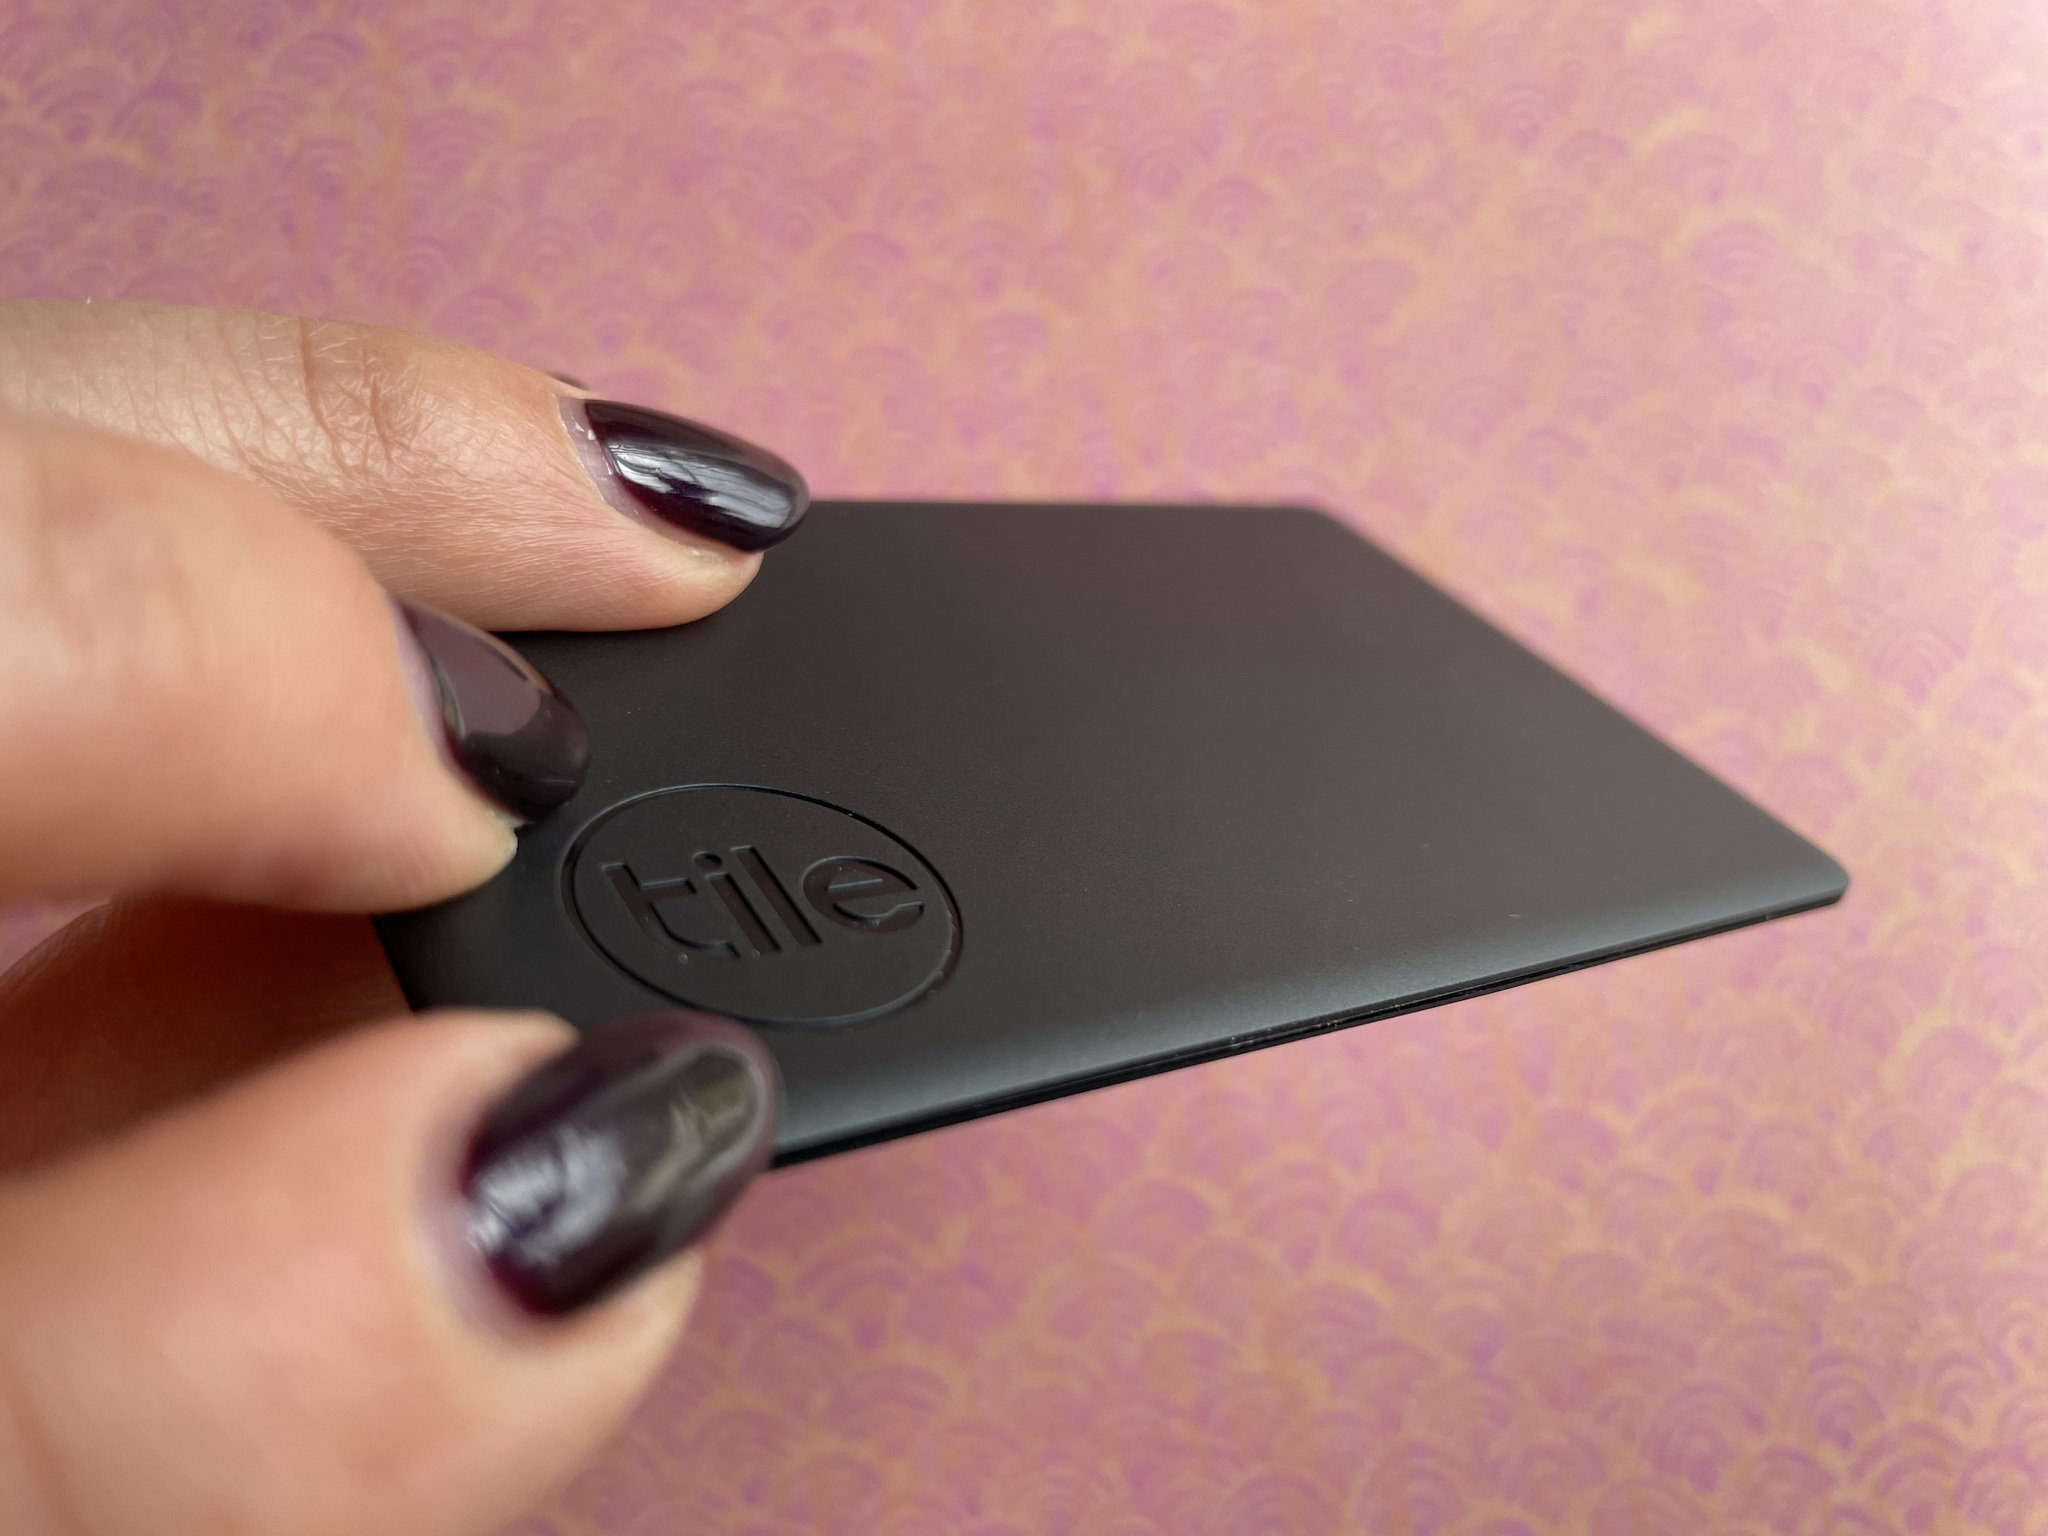 tile slim review keep track of your